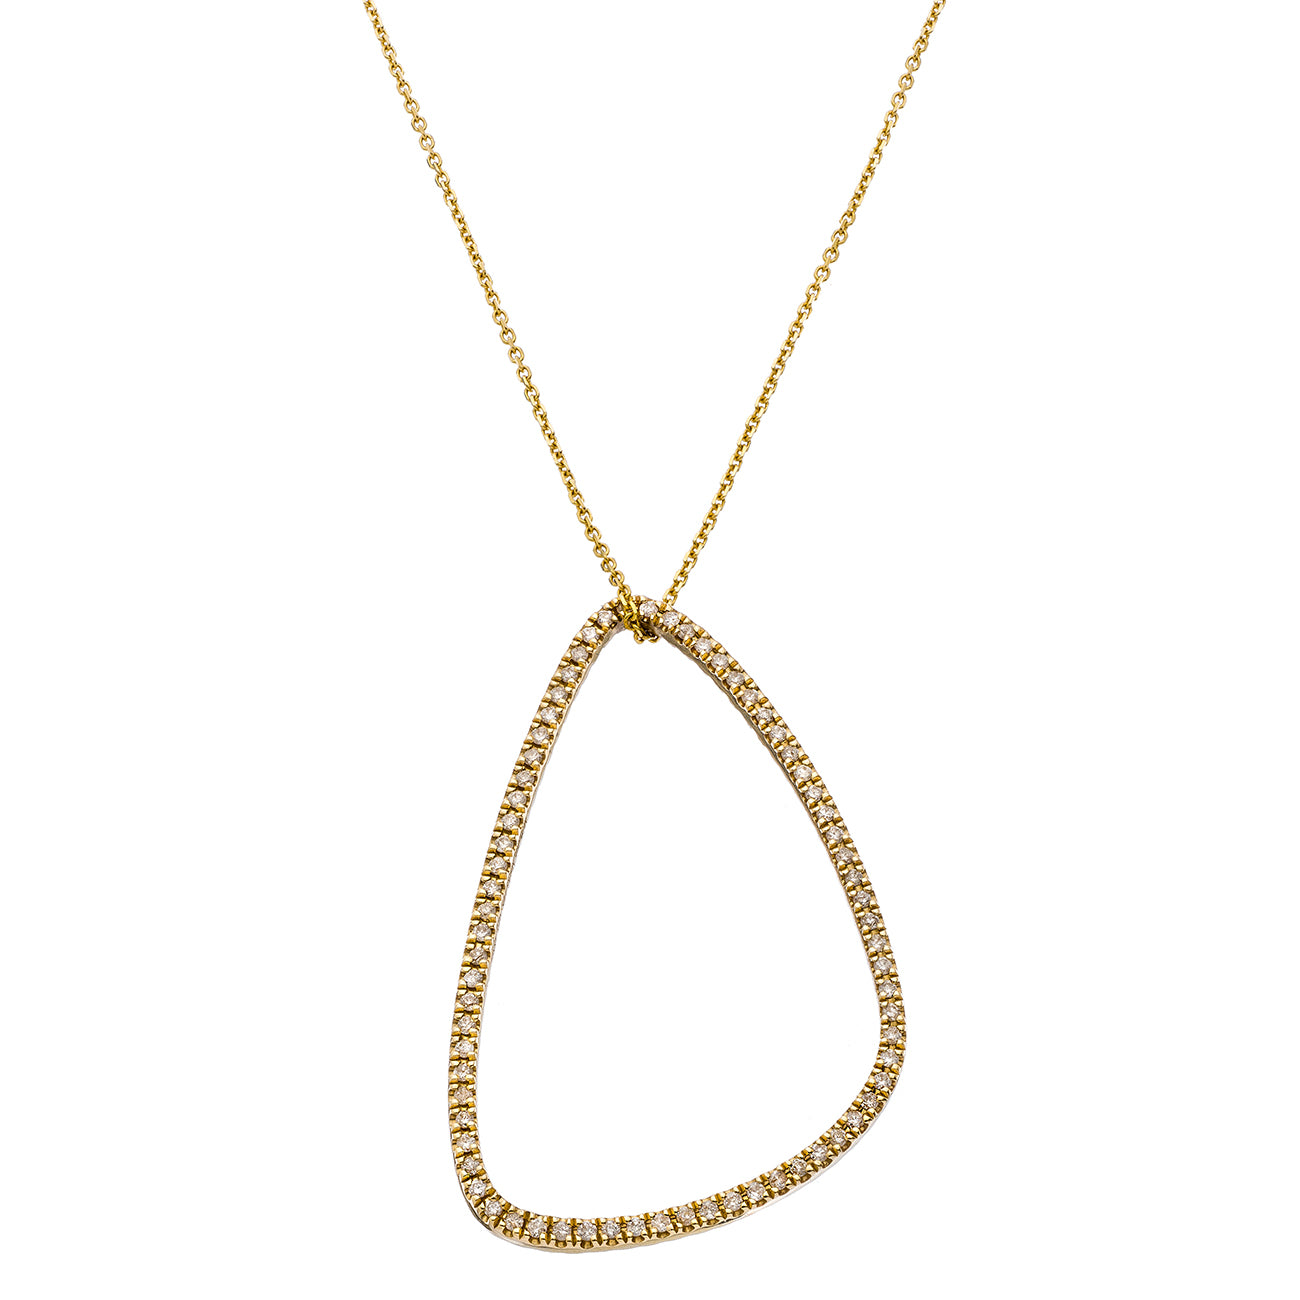 Veronica Necklace Yellow Gold